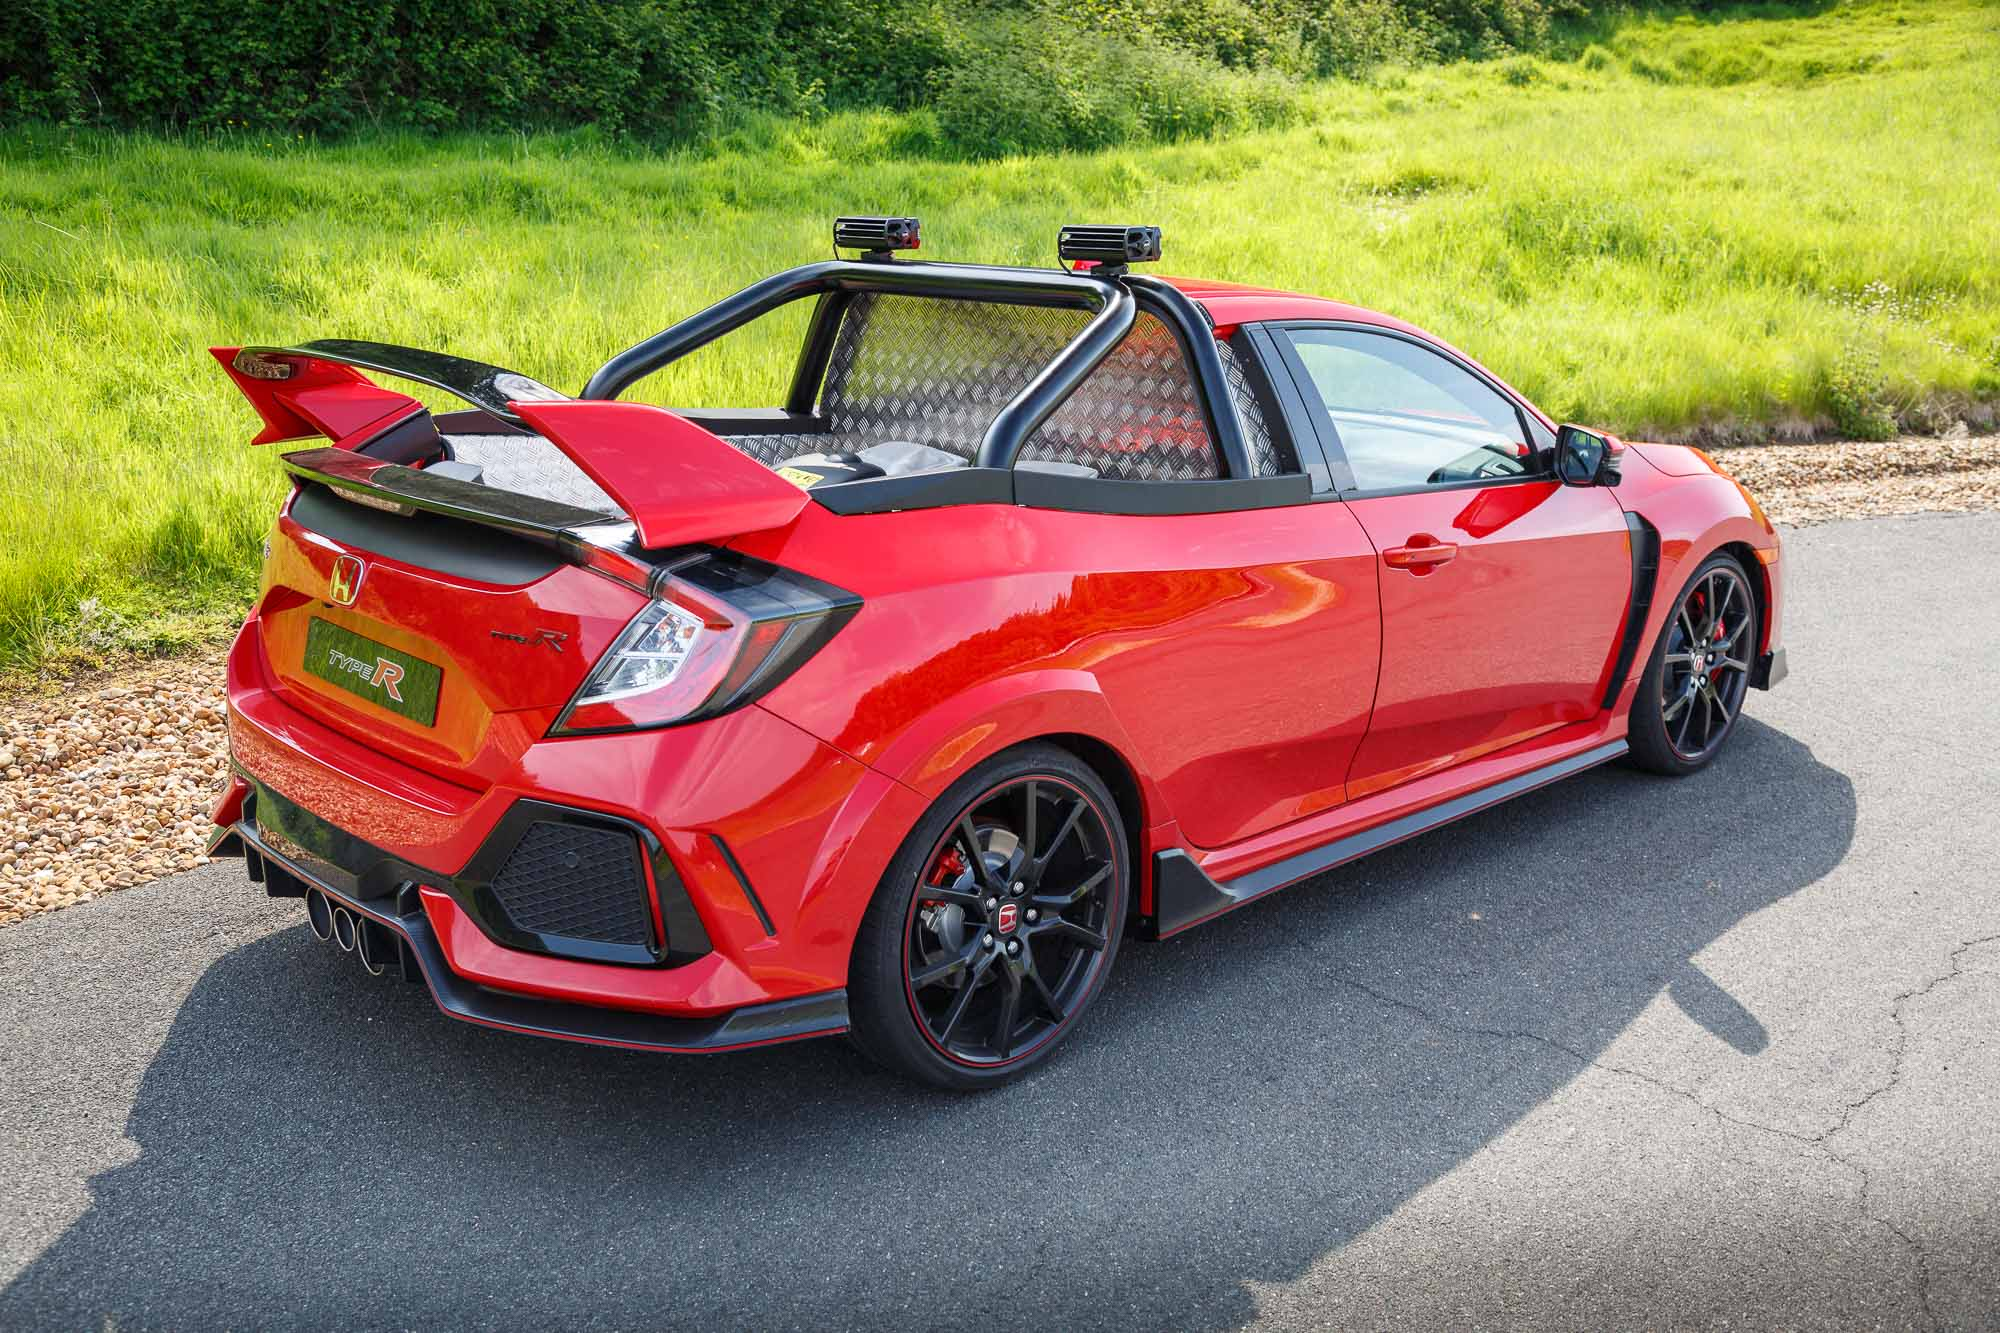 Honda Civic Type R Pickup Truck (165MPH And 0-62mph In